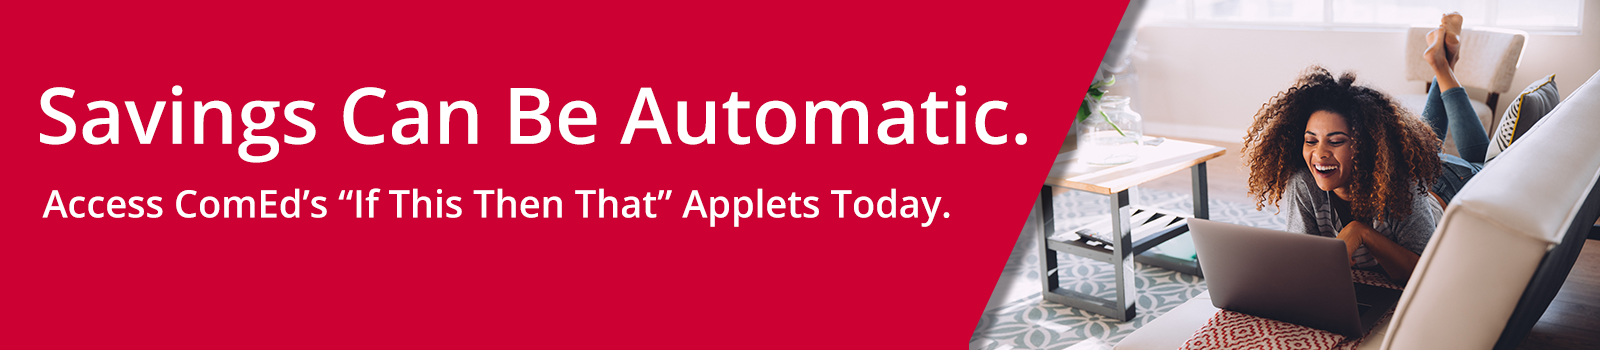 Savings Can Be Automatic. Access ComEd's 'If This Then That' Applets Today.